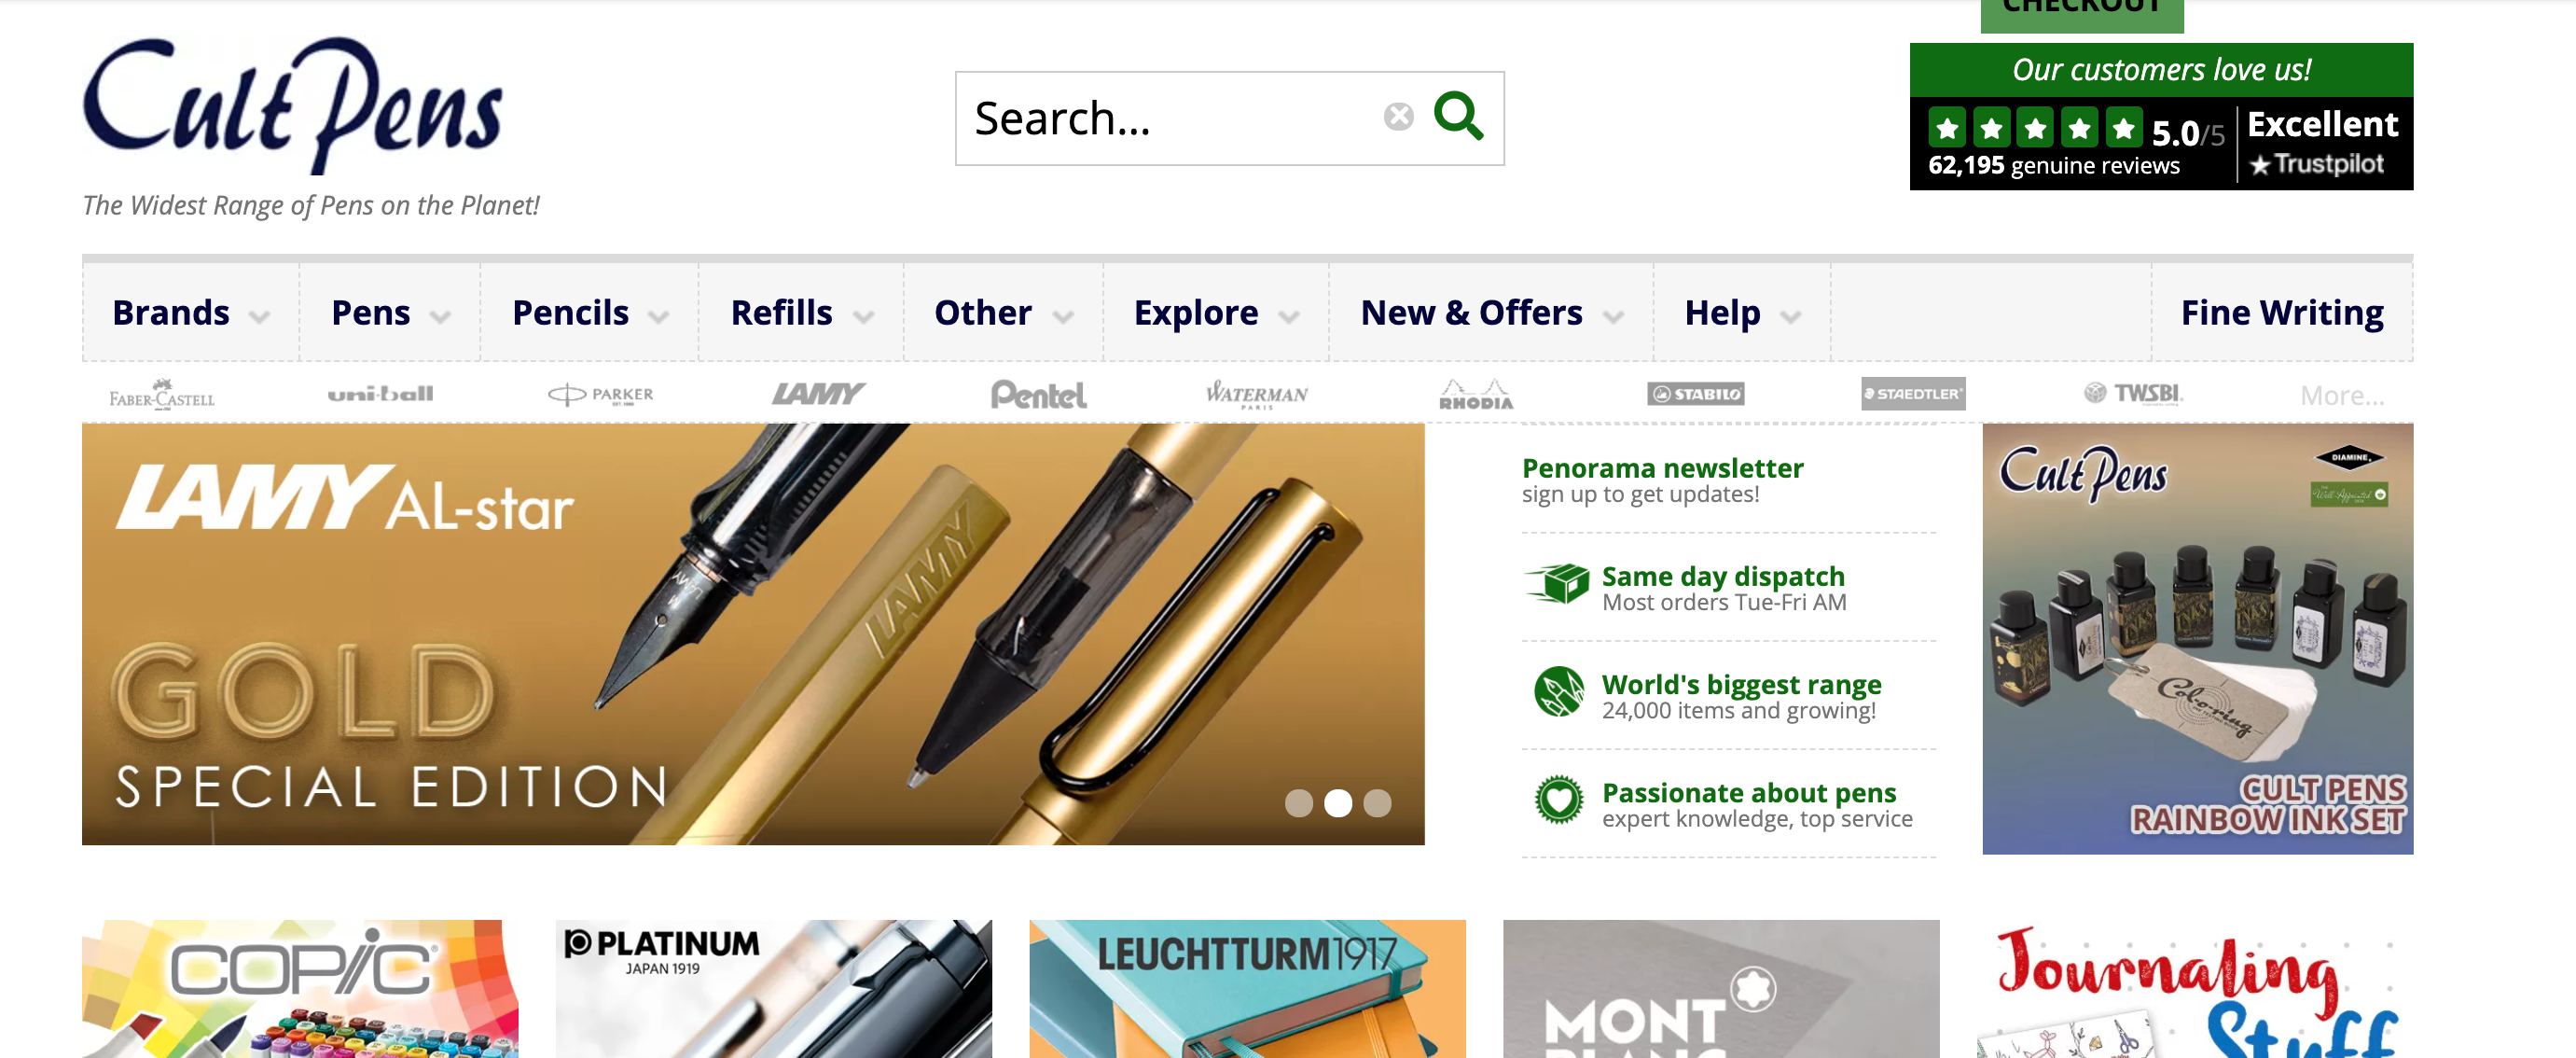 Above: Cult Pens offers over 24,000 different products.